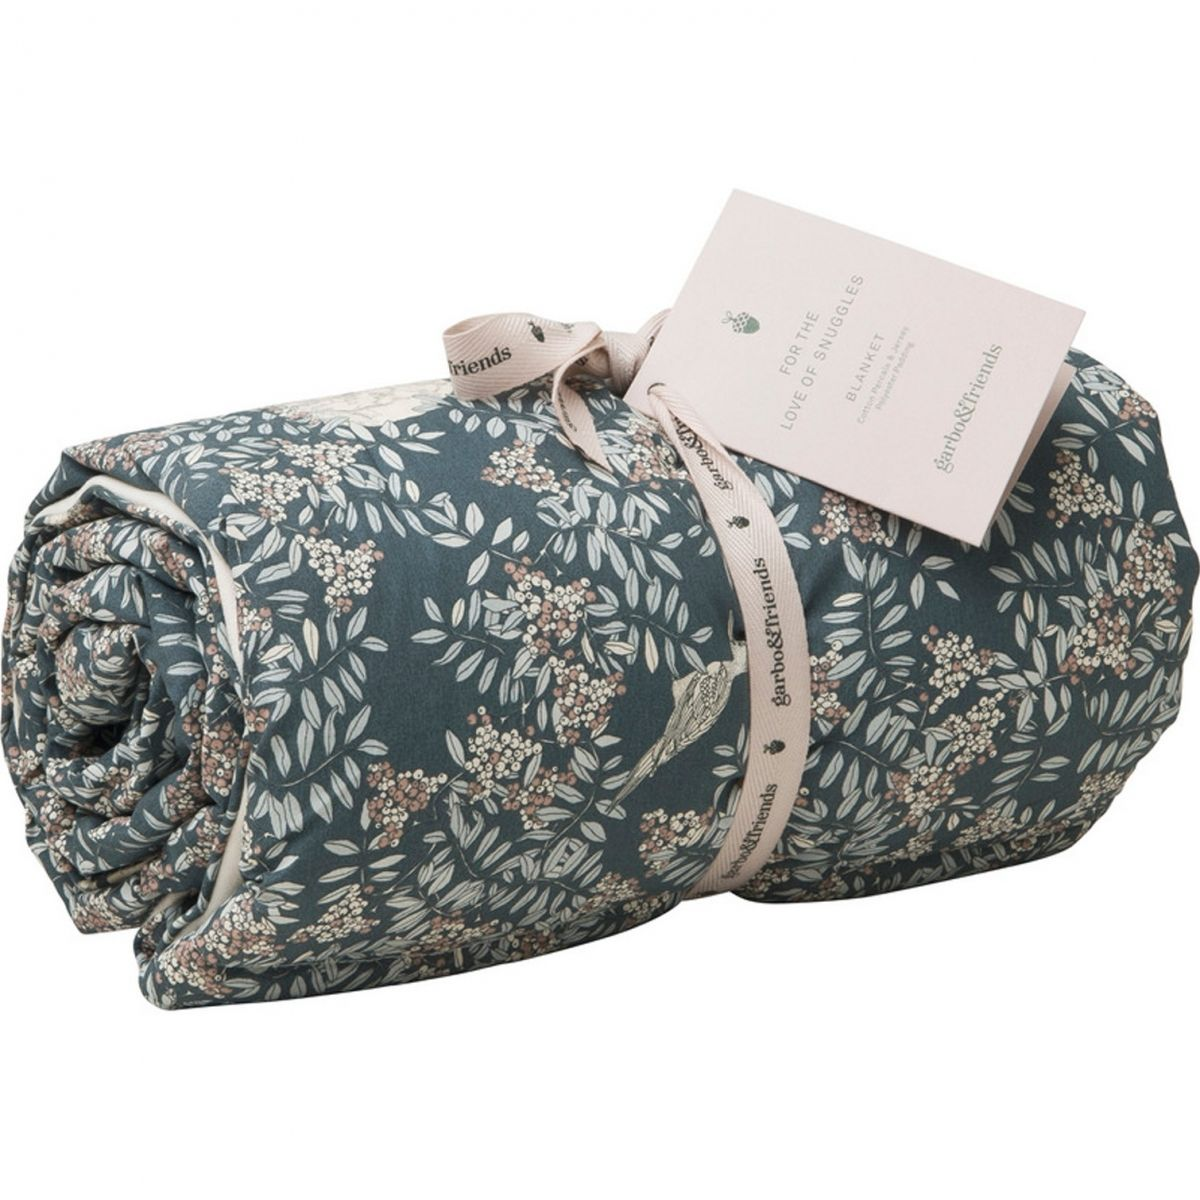 Fauna Bed Cover dark green - Garbo & Friends